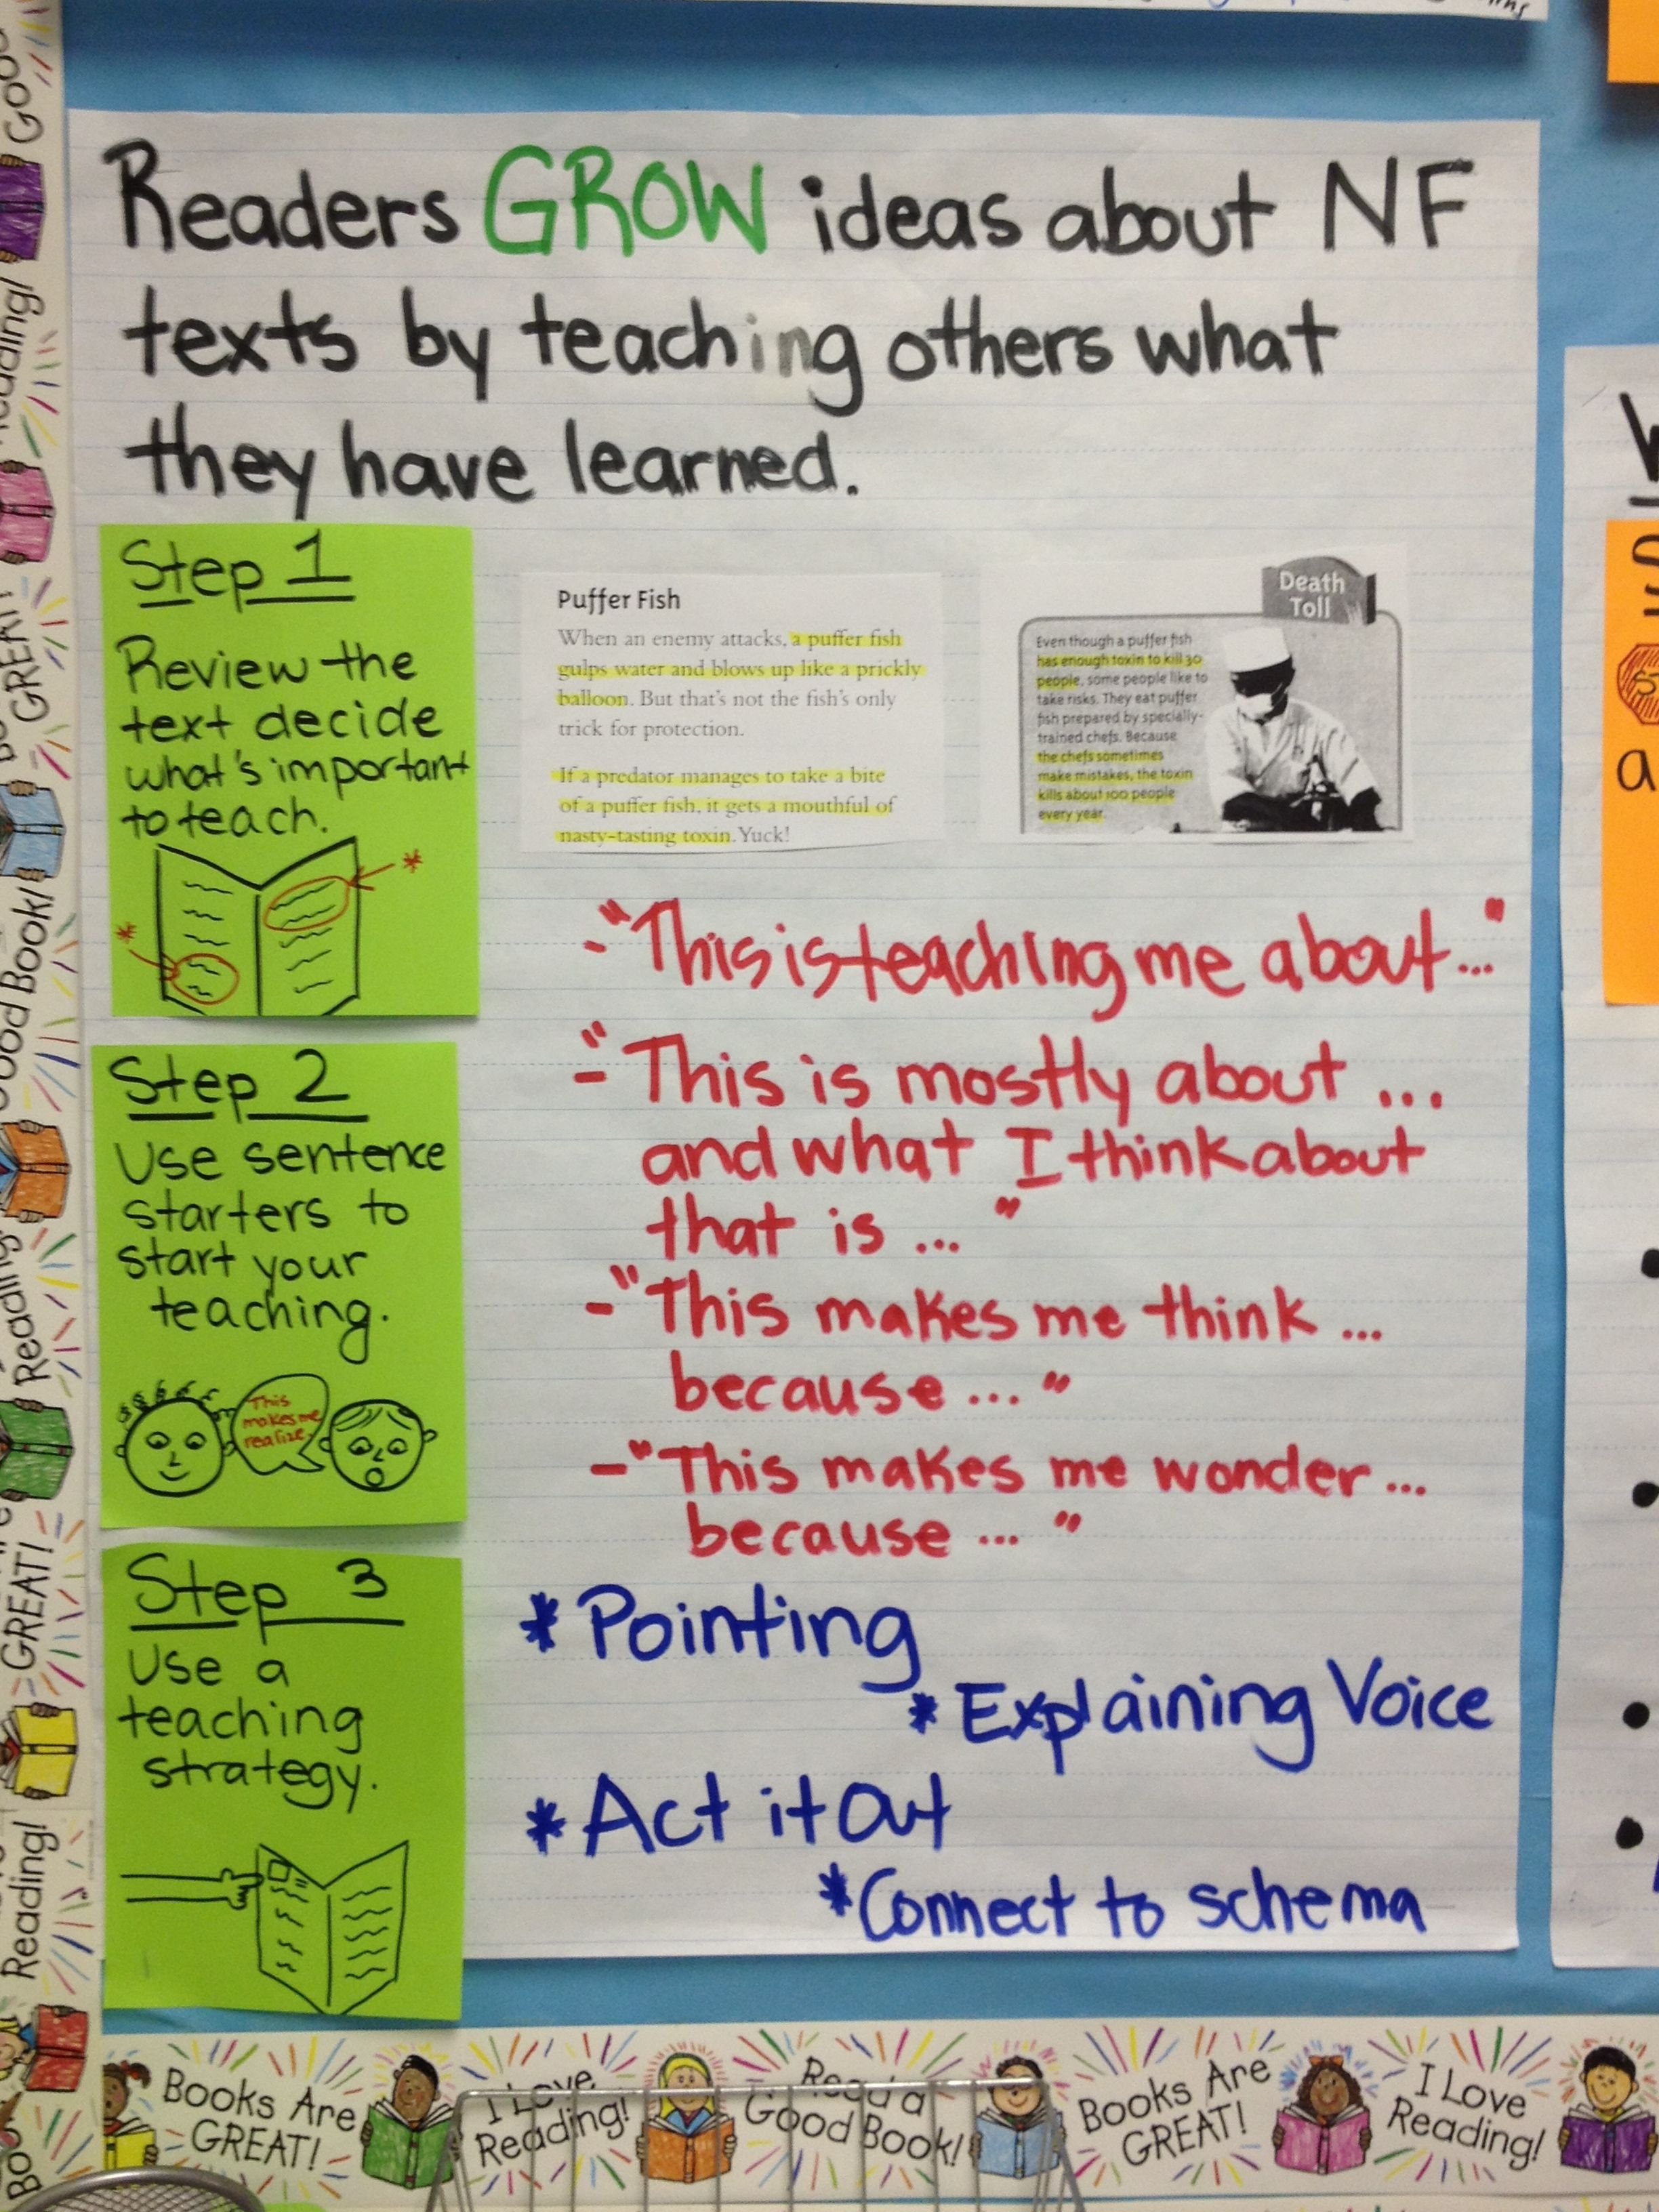 Readers GROW ideas about NF texts by teaching others what ...